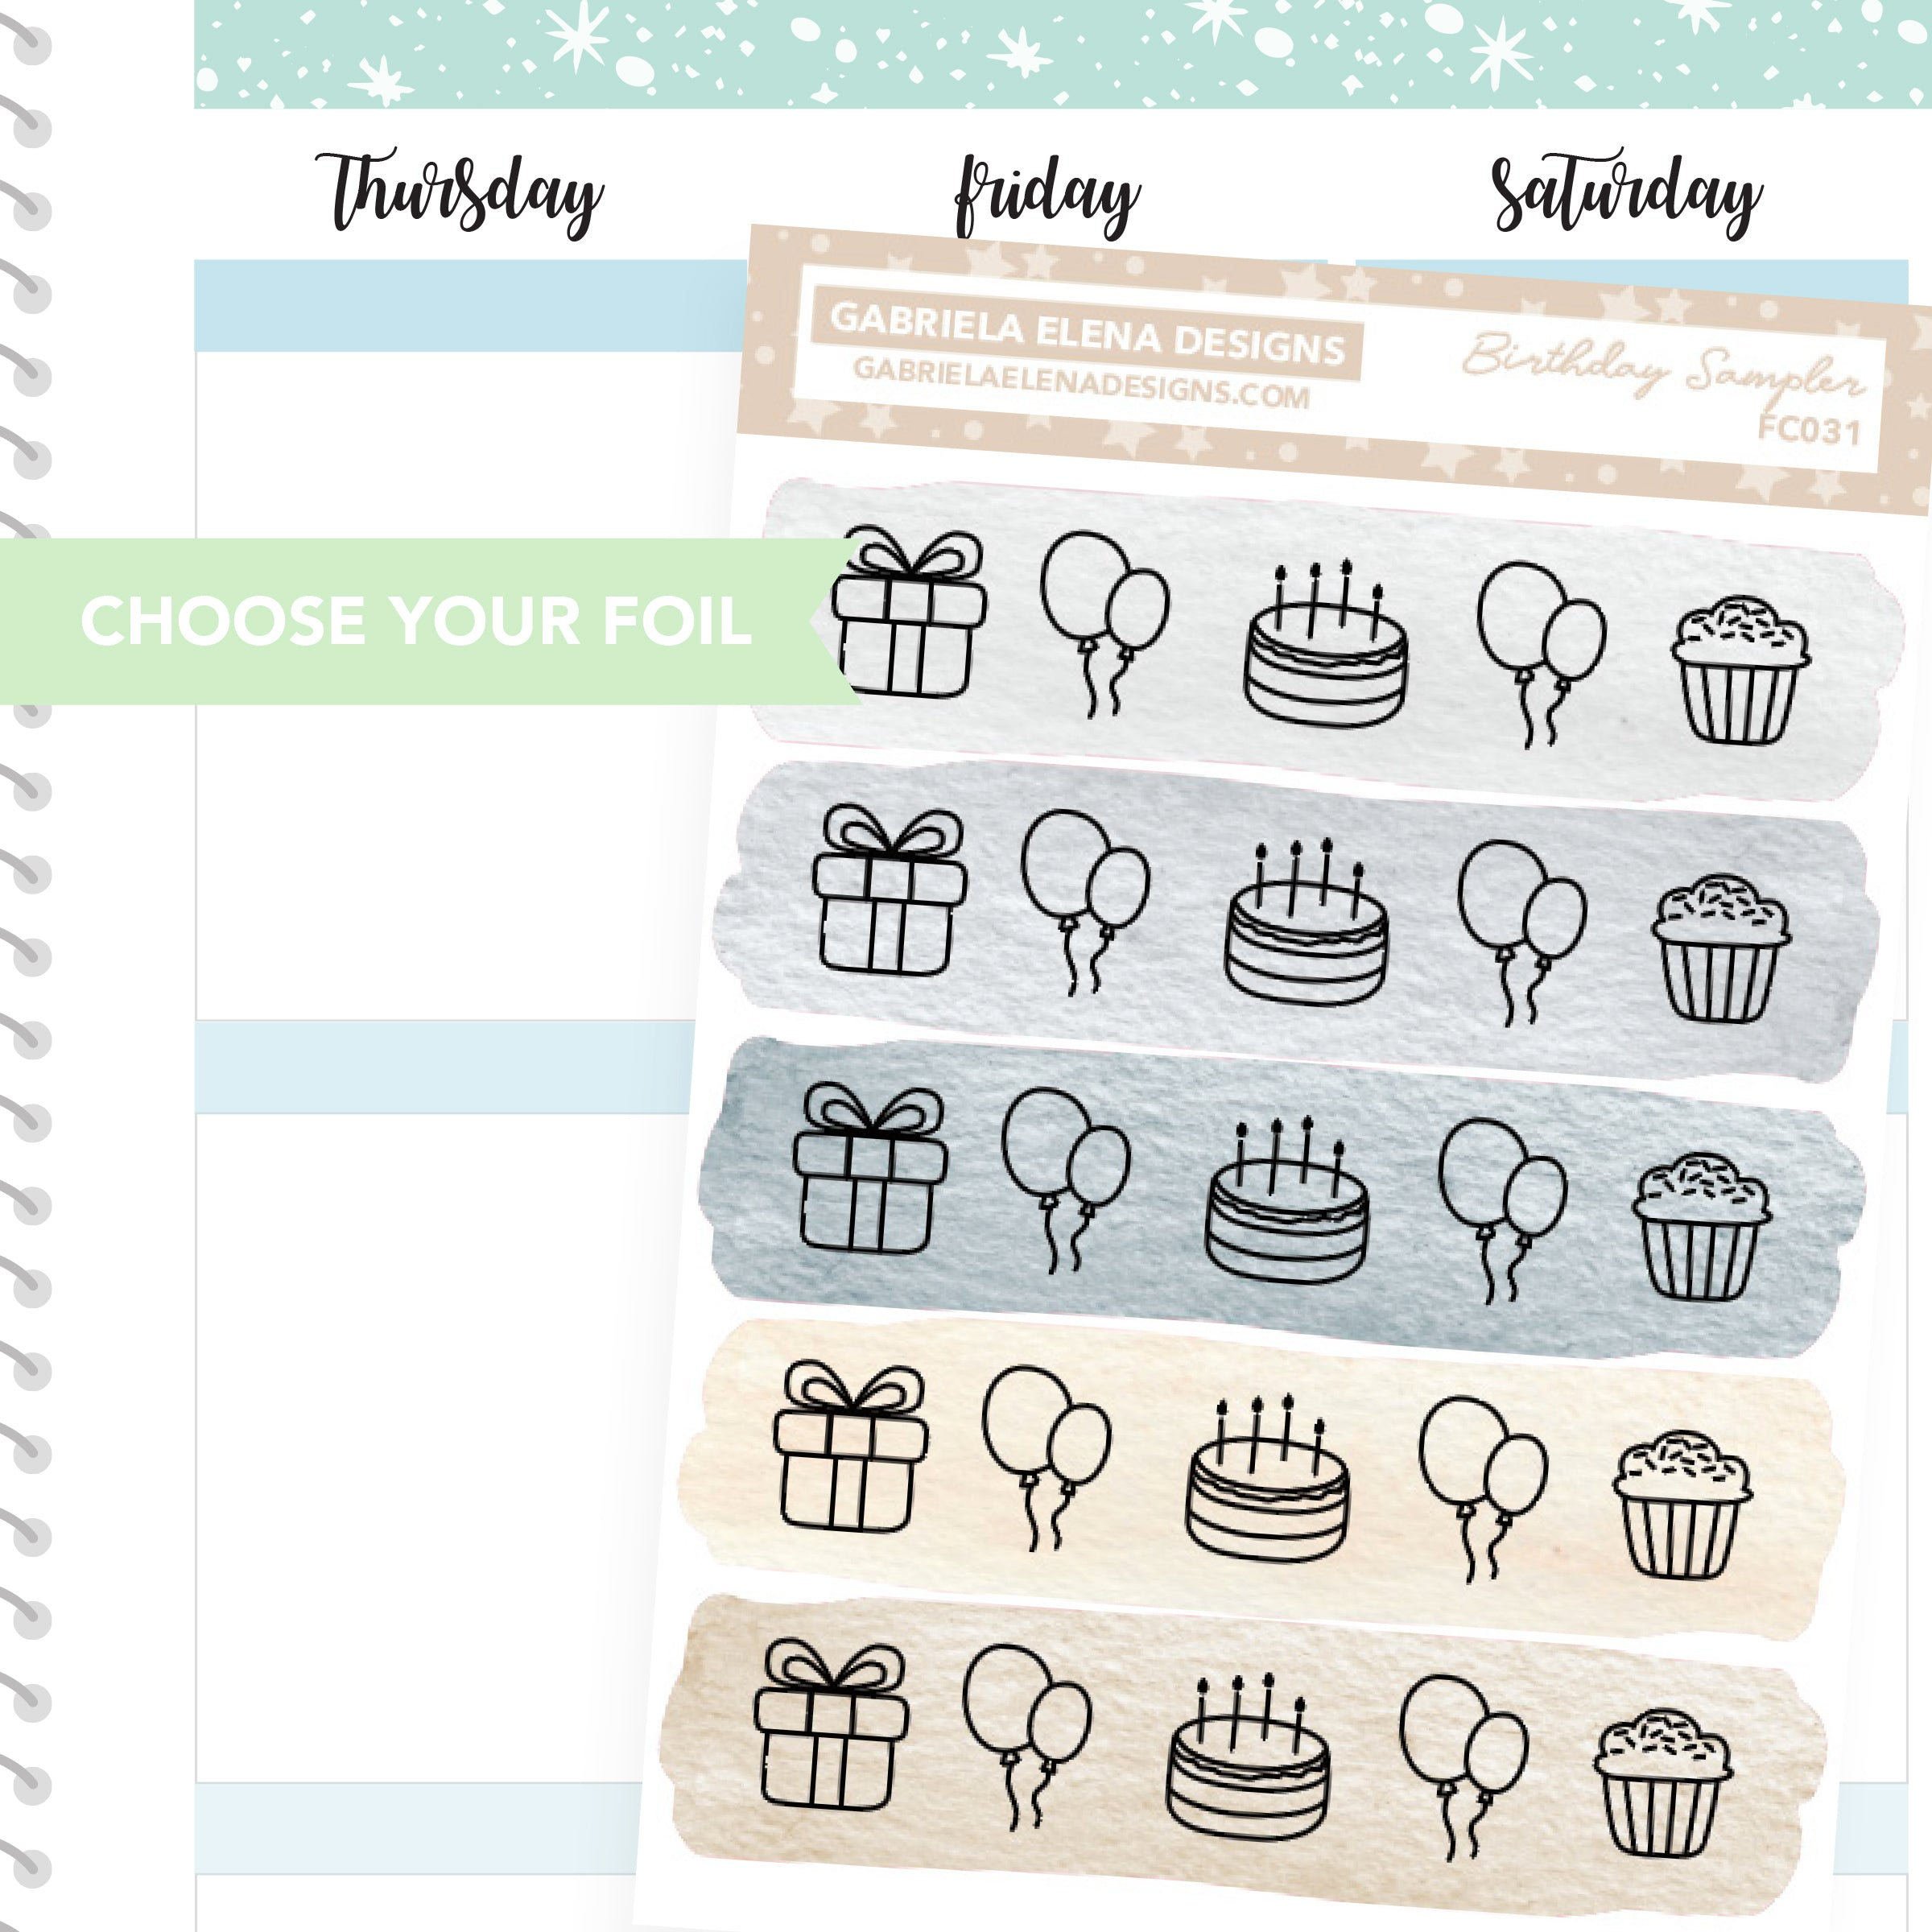 Birthday Sampler / FOIL Stickers / Choose Your Foil / Neutrals